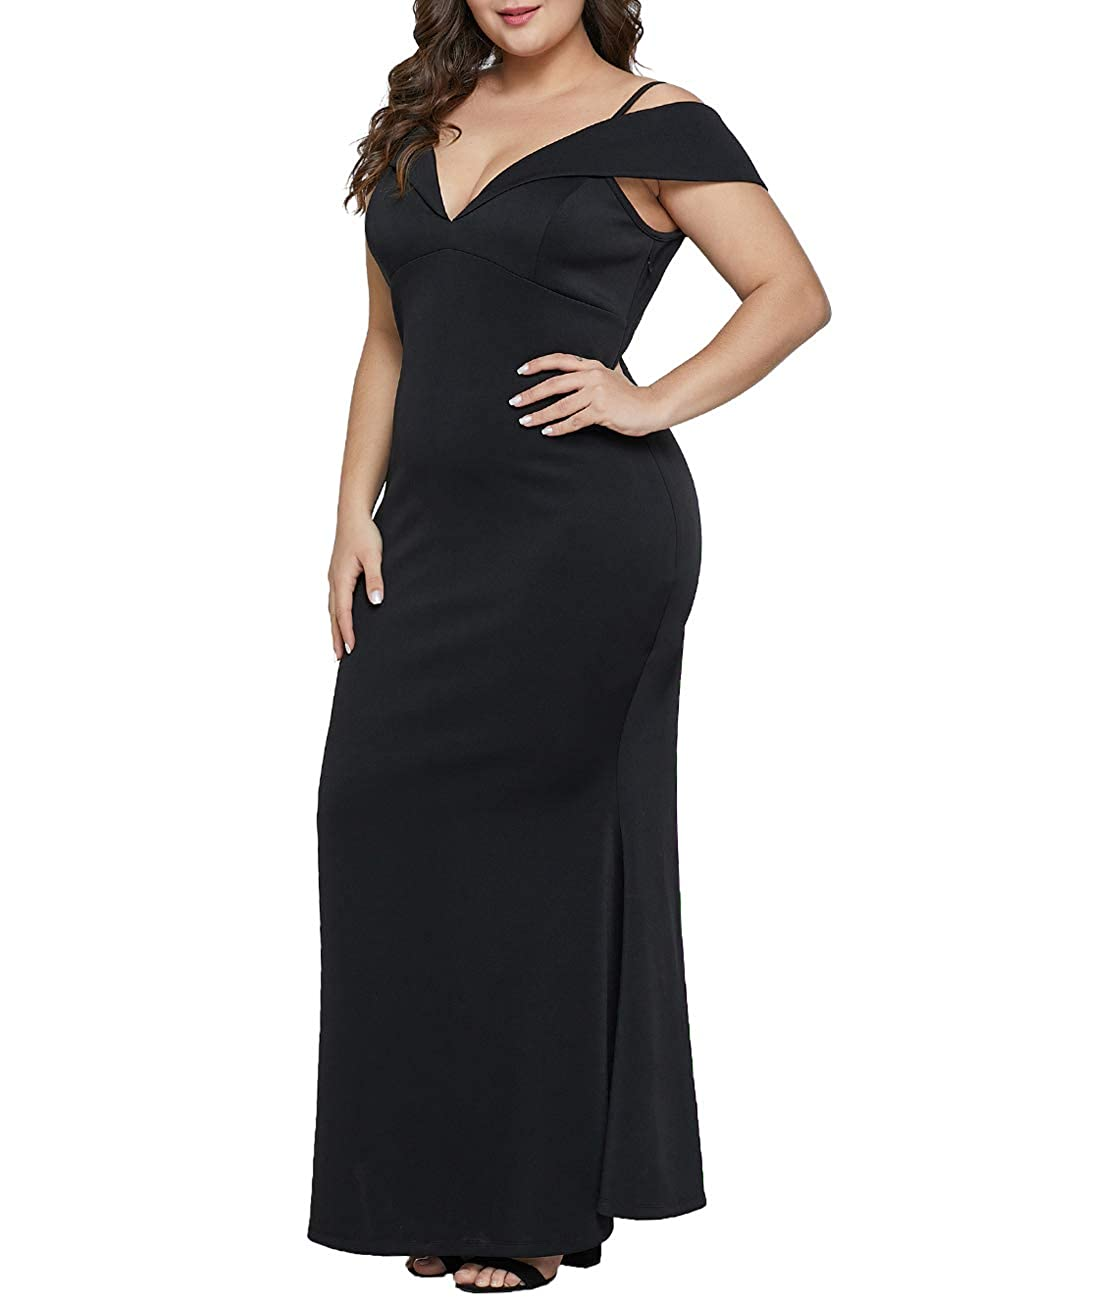 1bcf660101b Amazon.com  Lalagen Women s Plus Size Off Shoulder Long Formal Party Dress  Evening Gown  Clothing